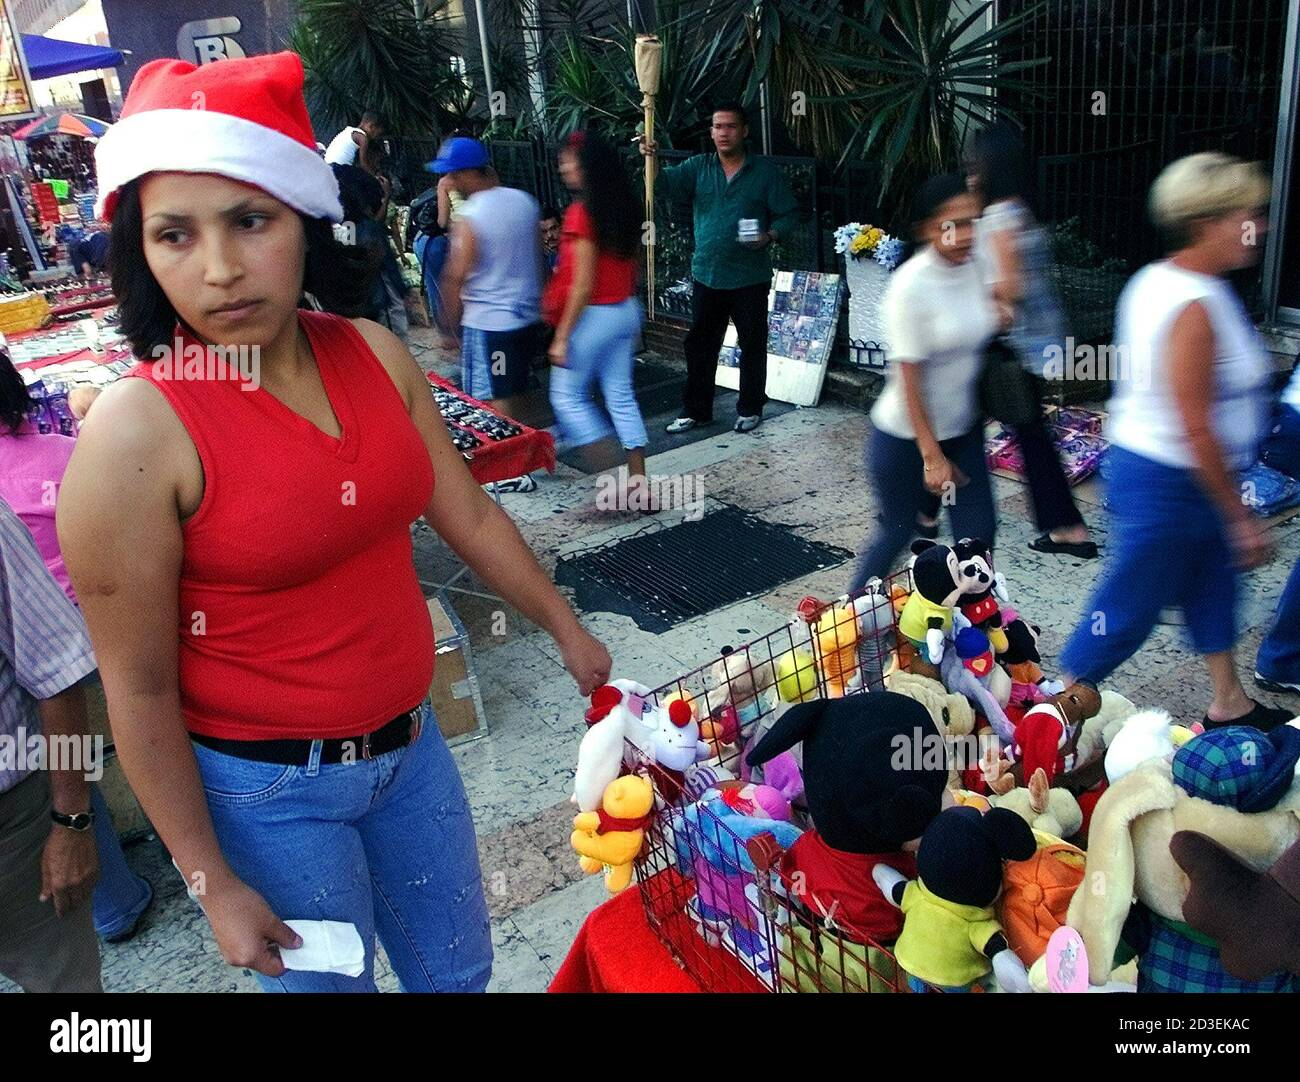 Elizabeth Daza, 20, sells puppets on the street in Caracas, December 23, 2002. Venezuelan President Hugo Chavez's government on Monday proposed a Christmas truce to foes as the nation steeled itself for a holiday marred by an opposition strike that has crippled the oil industry and disrupted gasoline and food supplies. REUTERS/Jorge Silva  JS Stock Photo